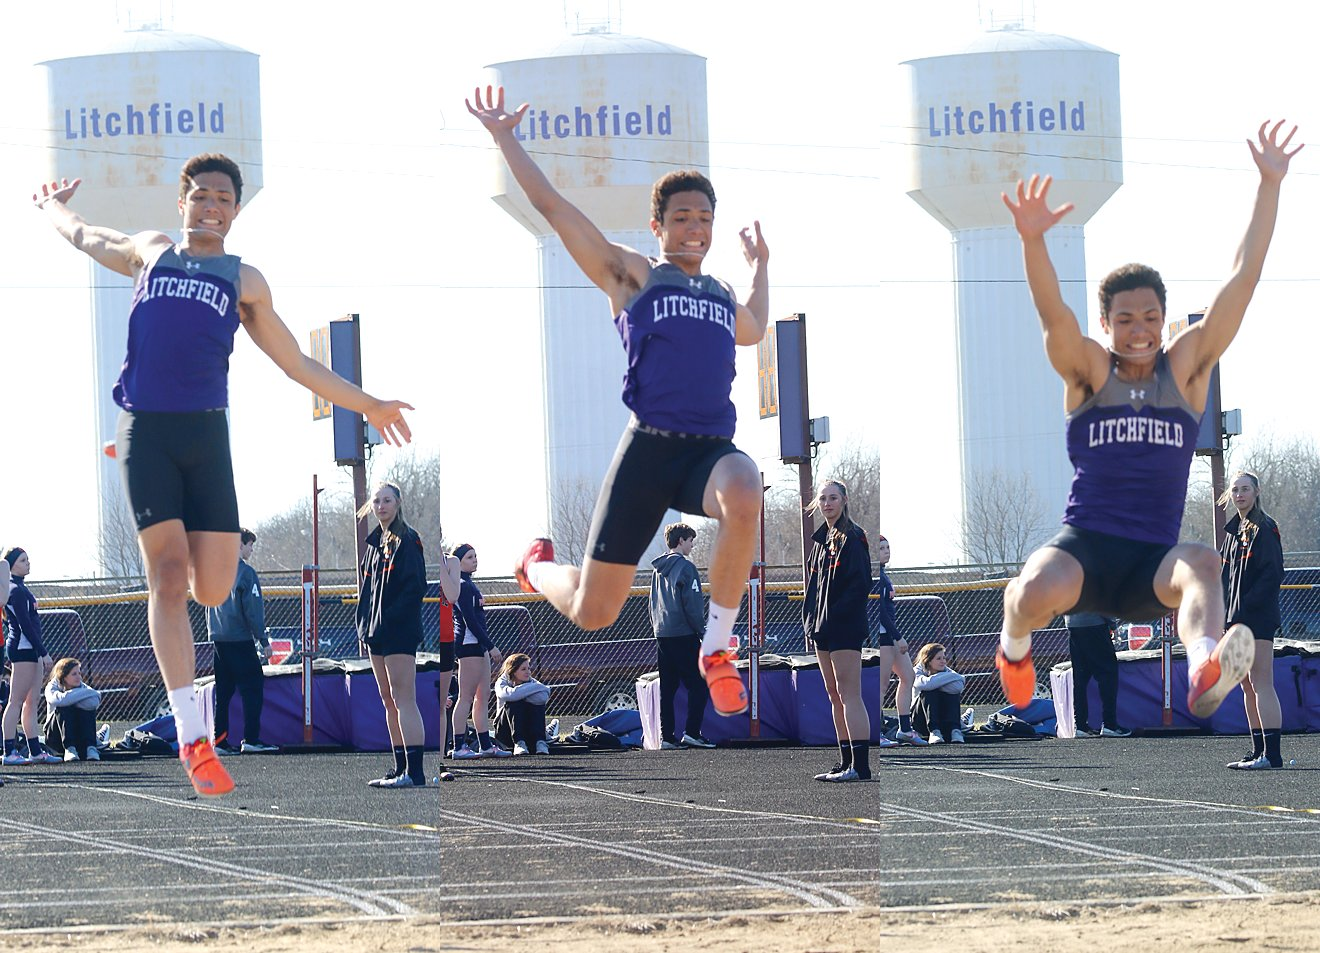 "Just over an hour after signing to play basketball for Illinois Wesleyan University, Litchfield senior Sam Painter made another big leap, this time at the long jump pit during the Litchfield Relays. Painter would go 21'0.75"" for the best jump of the competition, helping the Panthers to a second place finish in the event and a fourth place finish in the team standings."